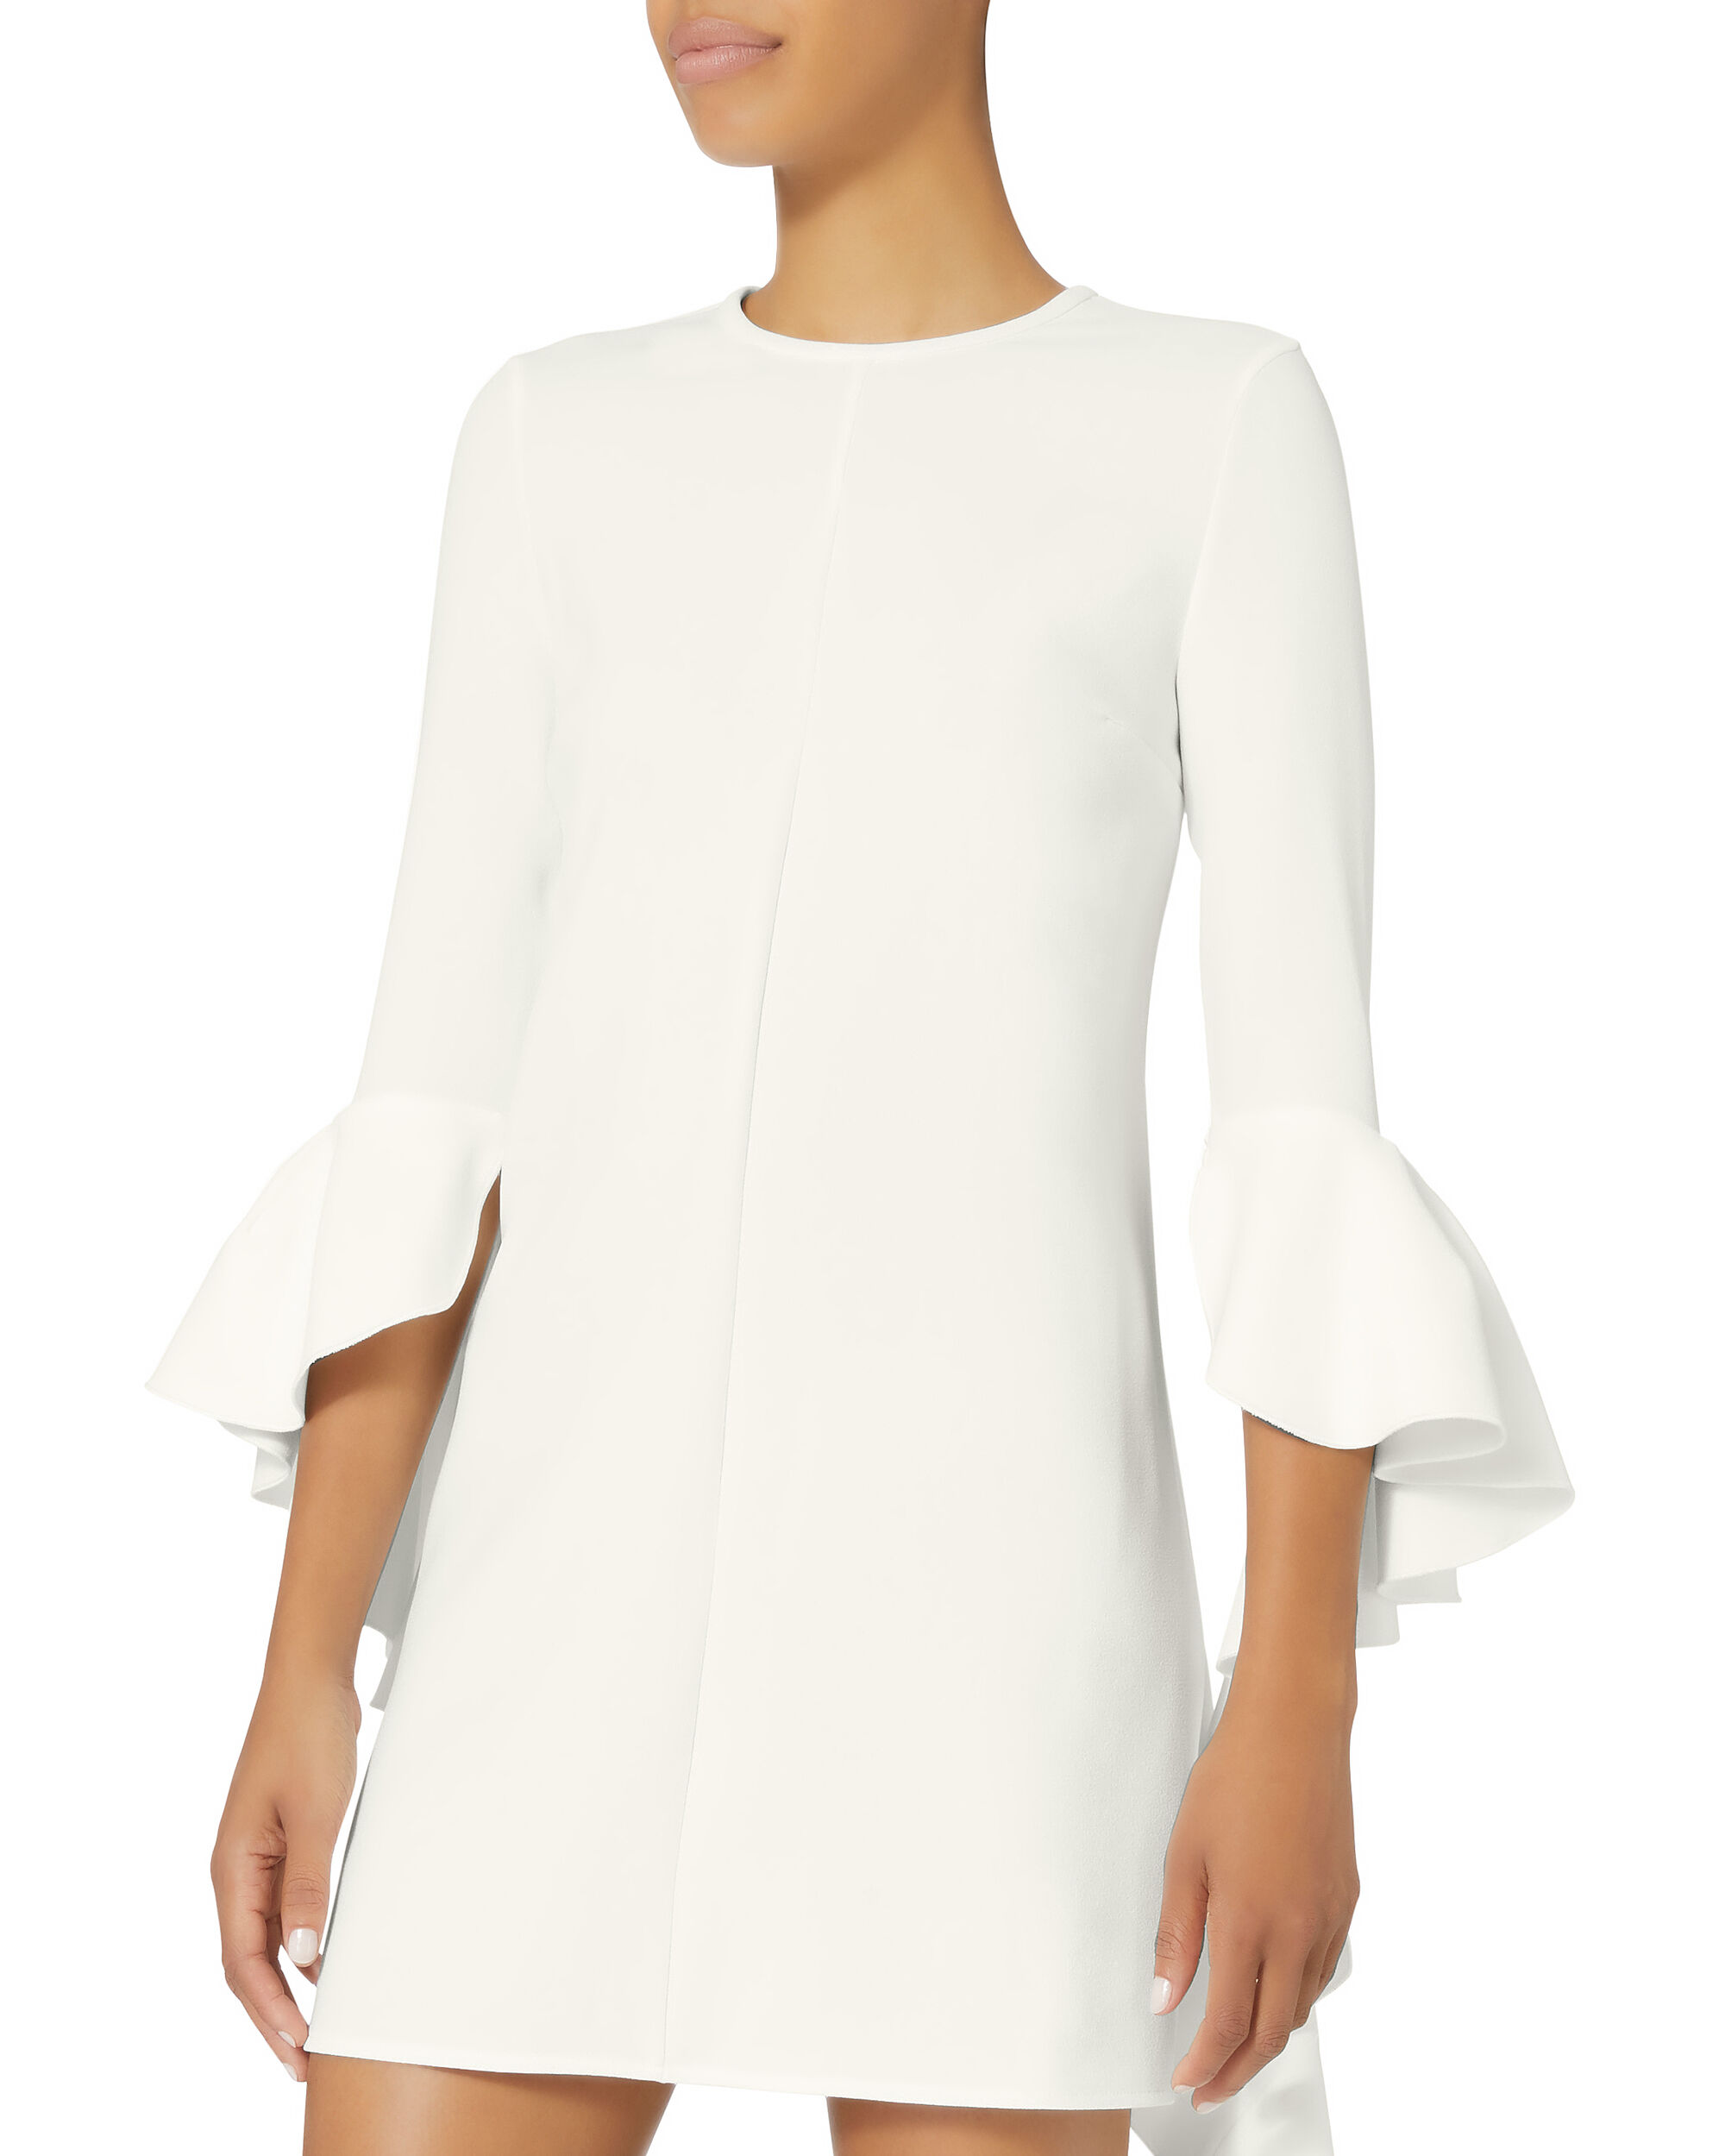 Kilkenny Mini Dress, IVORY, hi-res